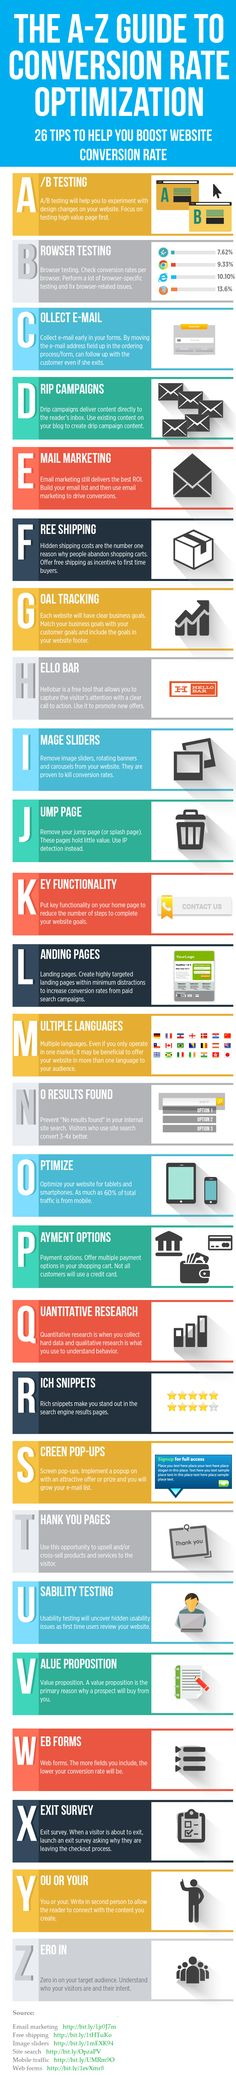 26 Tips to Help You Boost Website Conversion Rate - infographic | via #BornToBeSocial, Pinterest Marketing | http://borntobesocial.com